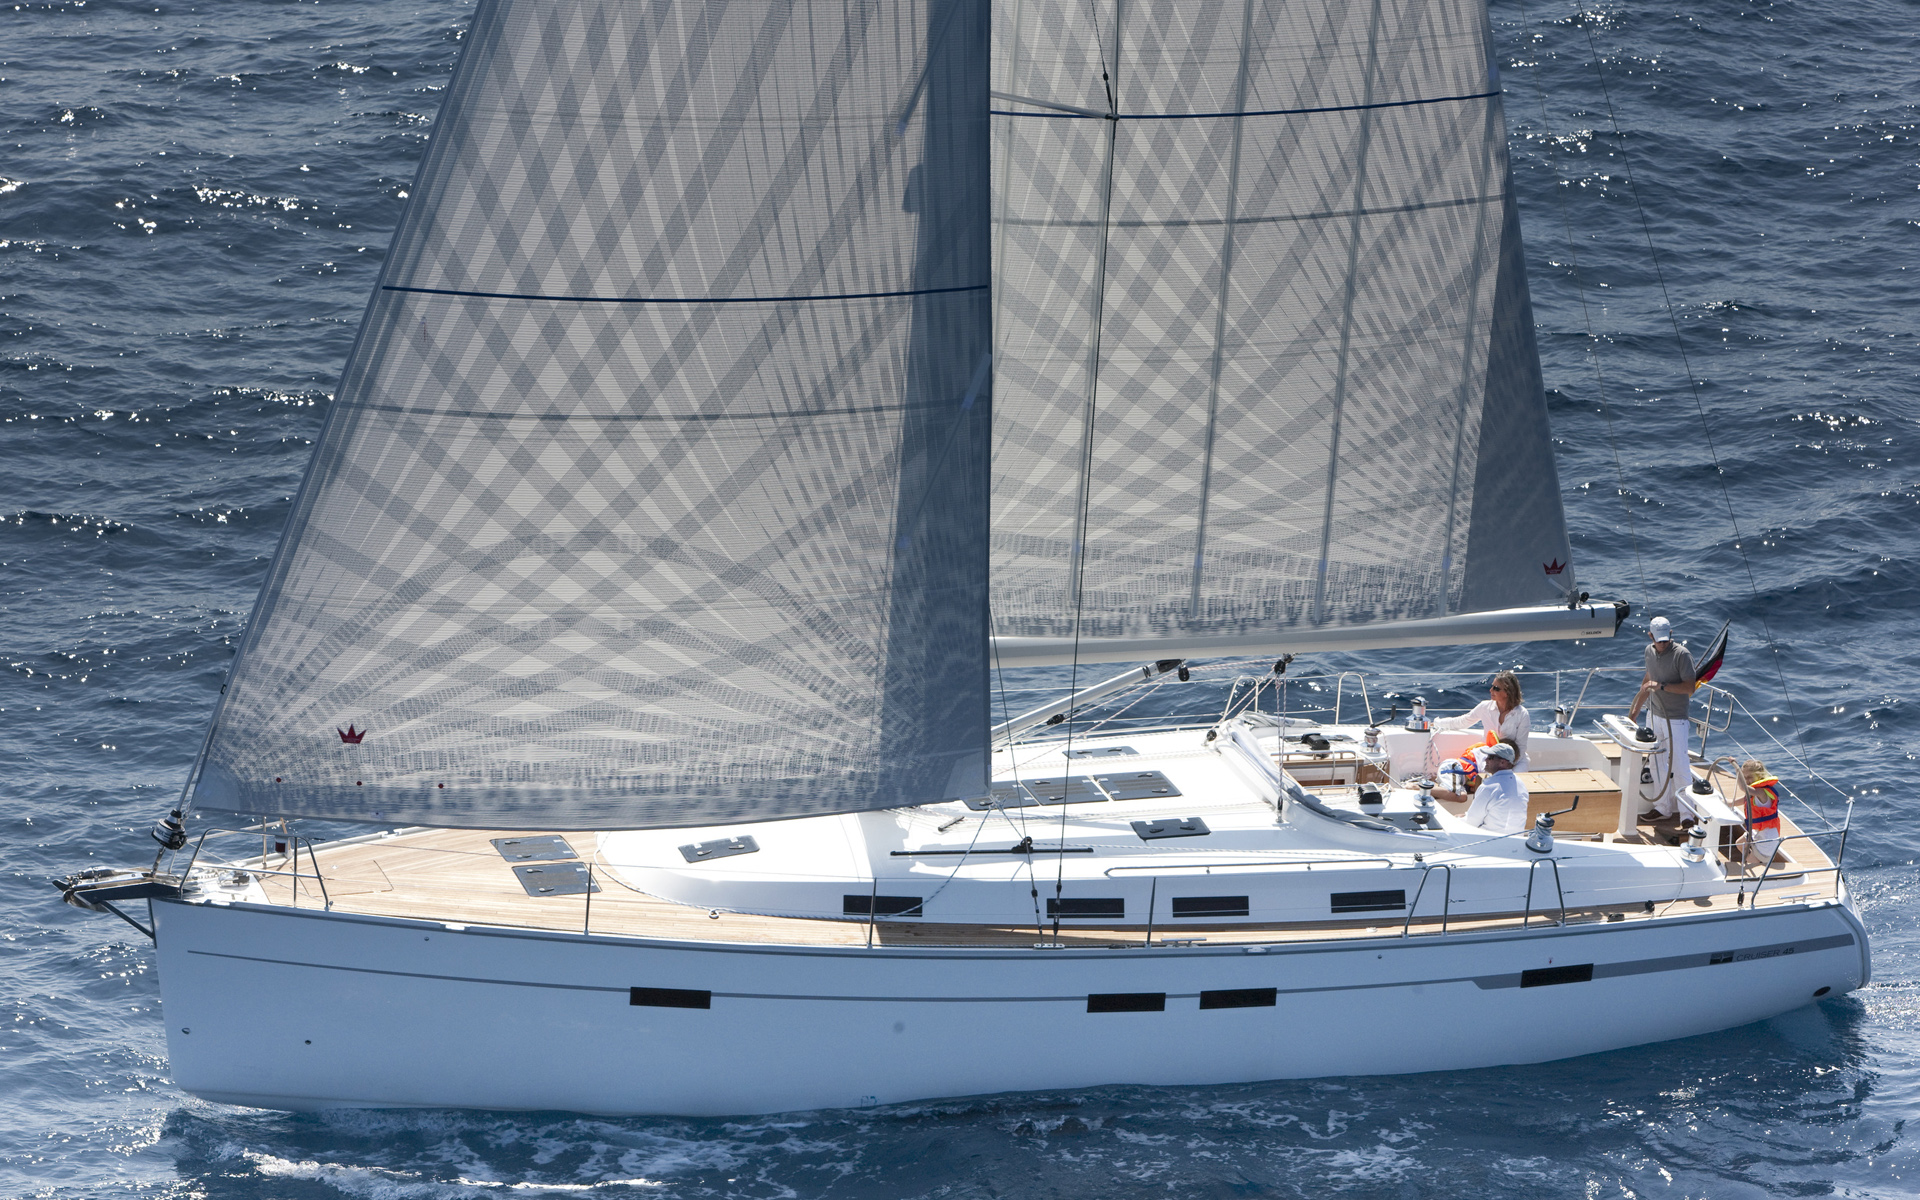 Bavaria Cruiser 56 Class - Sailing Yacht for Charter in Greece